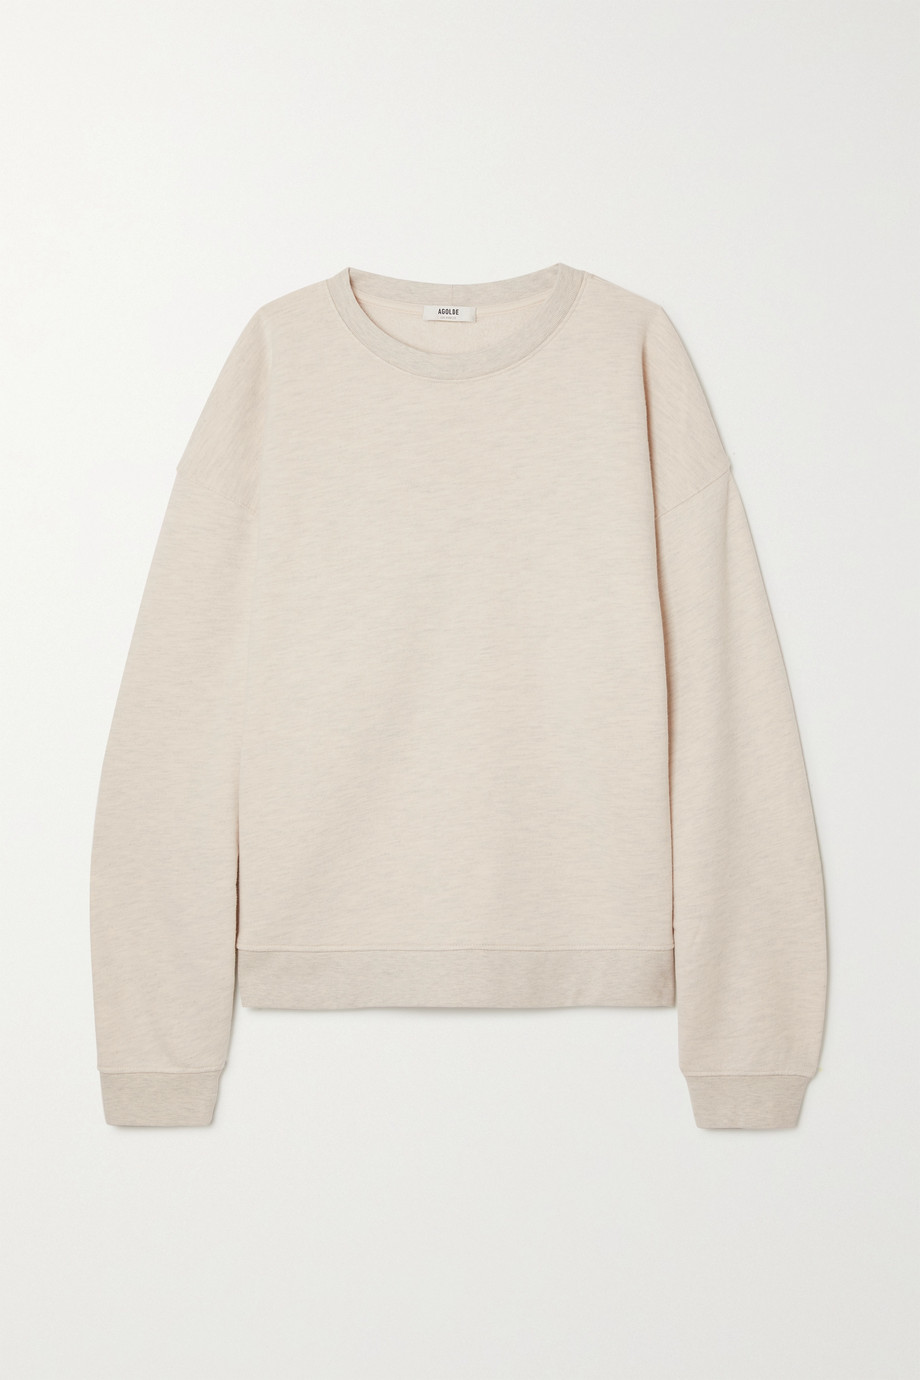 AGOLDE Nolan cotton-blend jersey sweatshirt